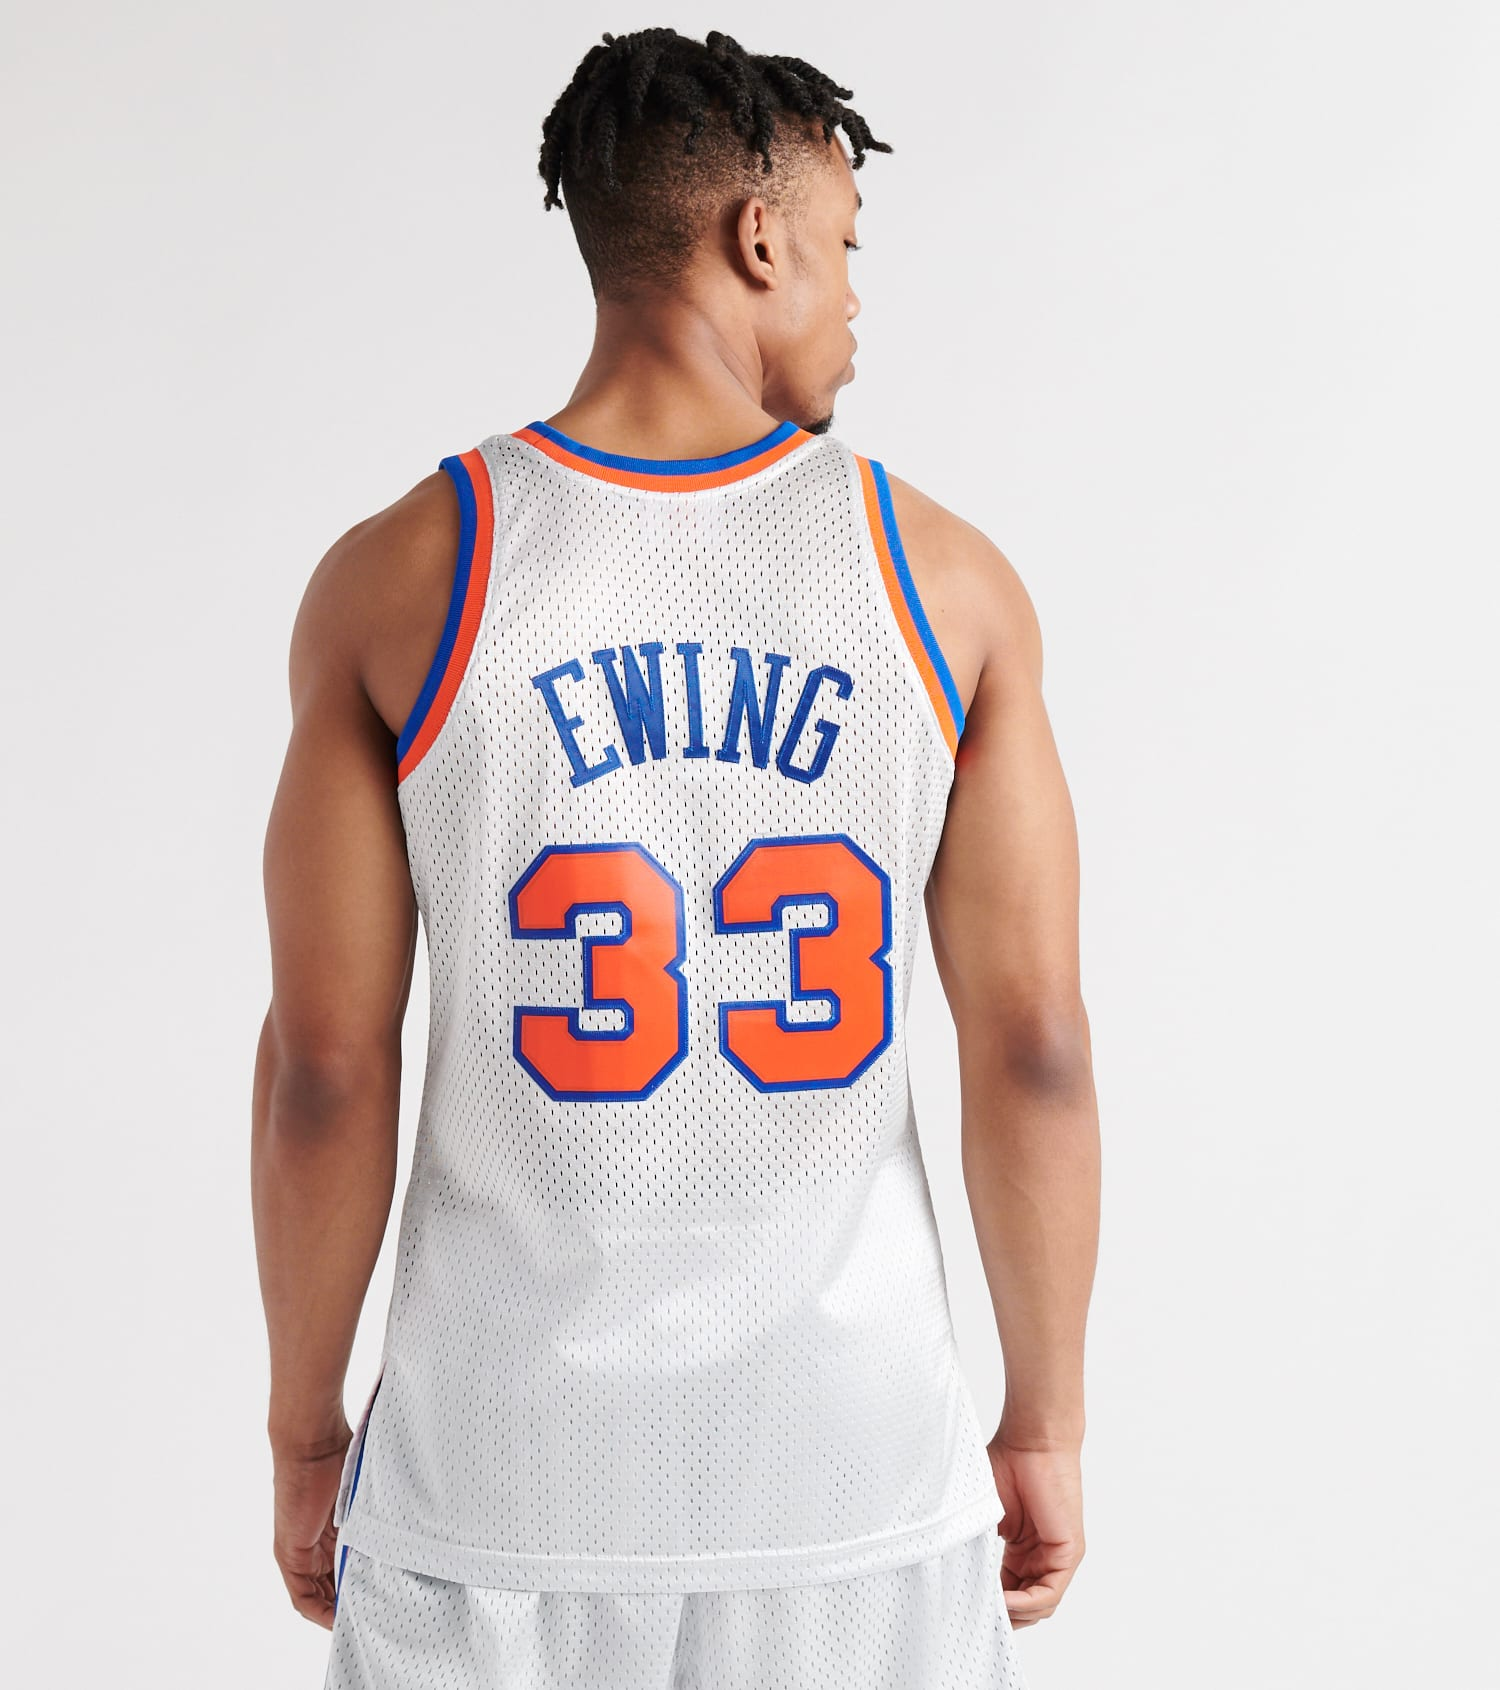 hot sale online e3e7c 799d9 New York Knicks Patrick Ewing Jersey